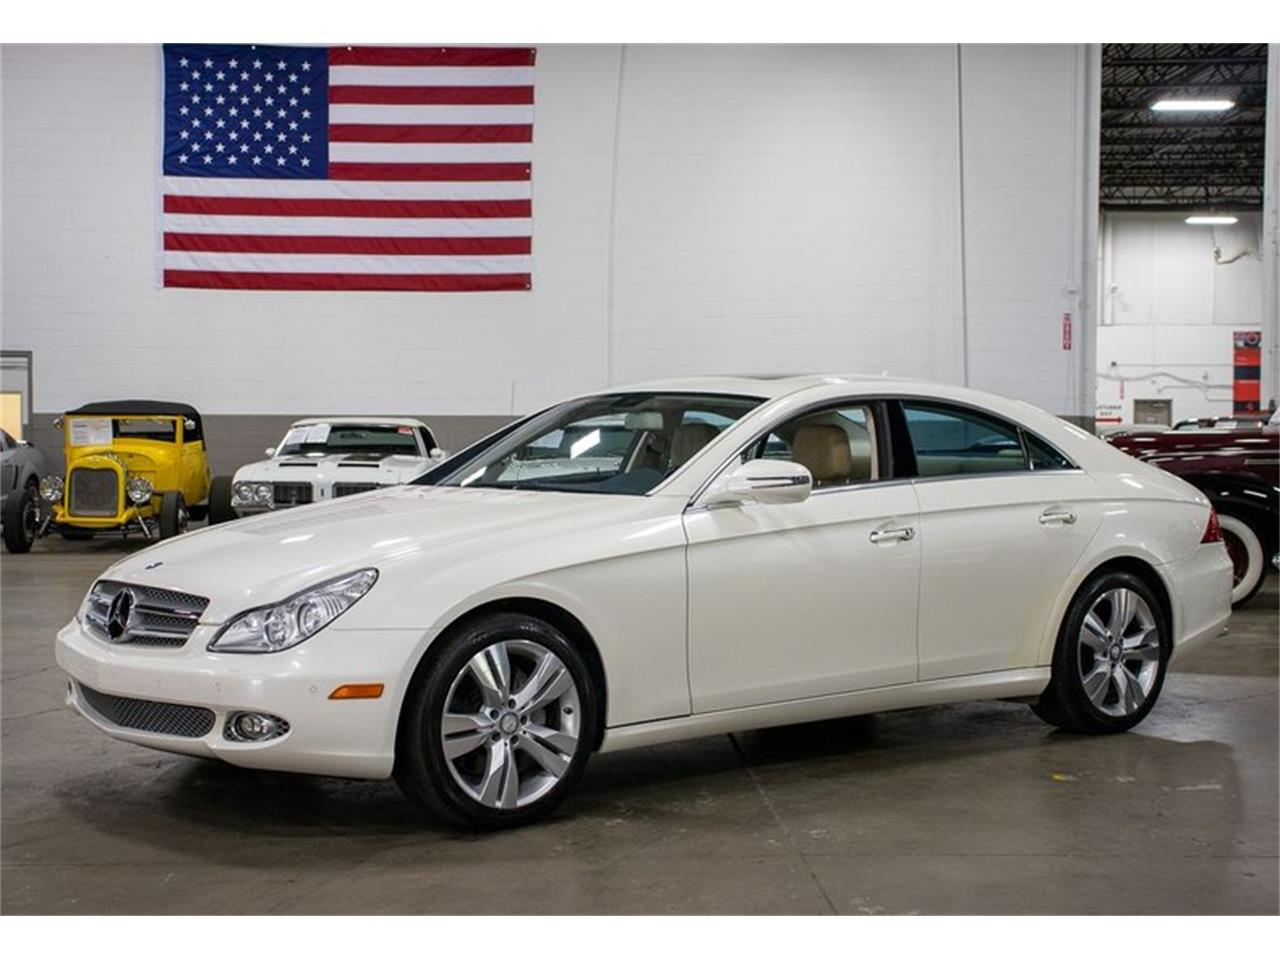 for sale 2009 mercedes-benz cls-class in kentwood, michigan cars - grand rapids, mi at geebo